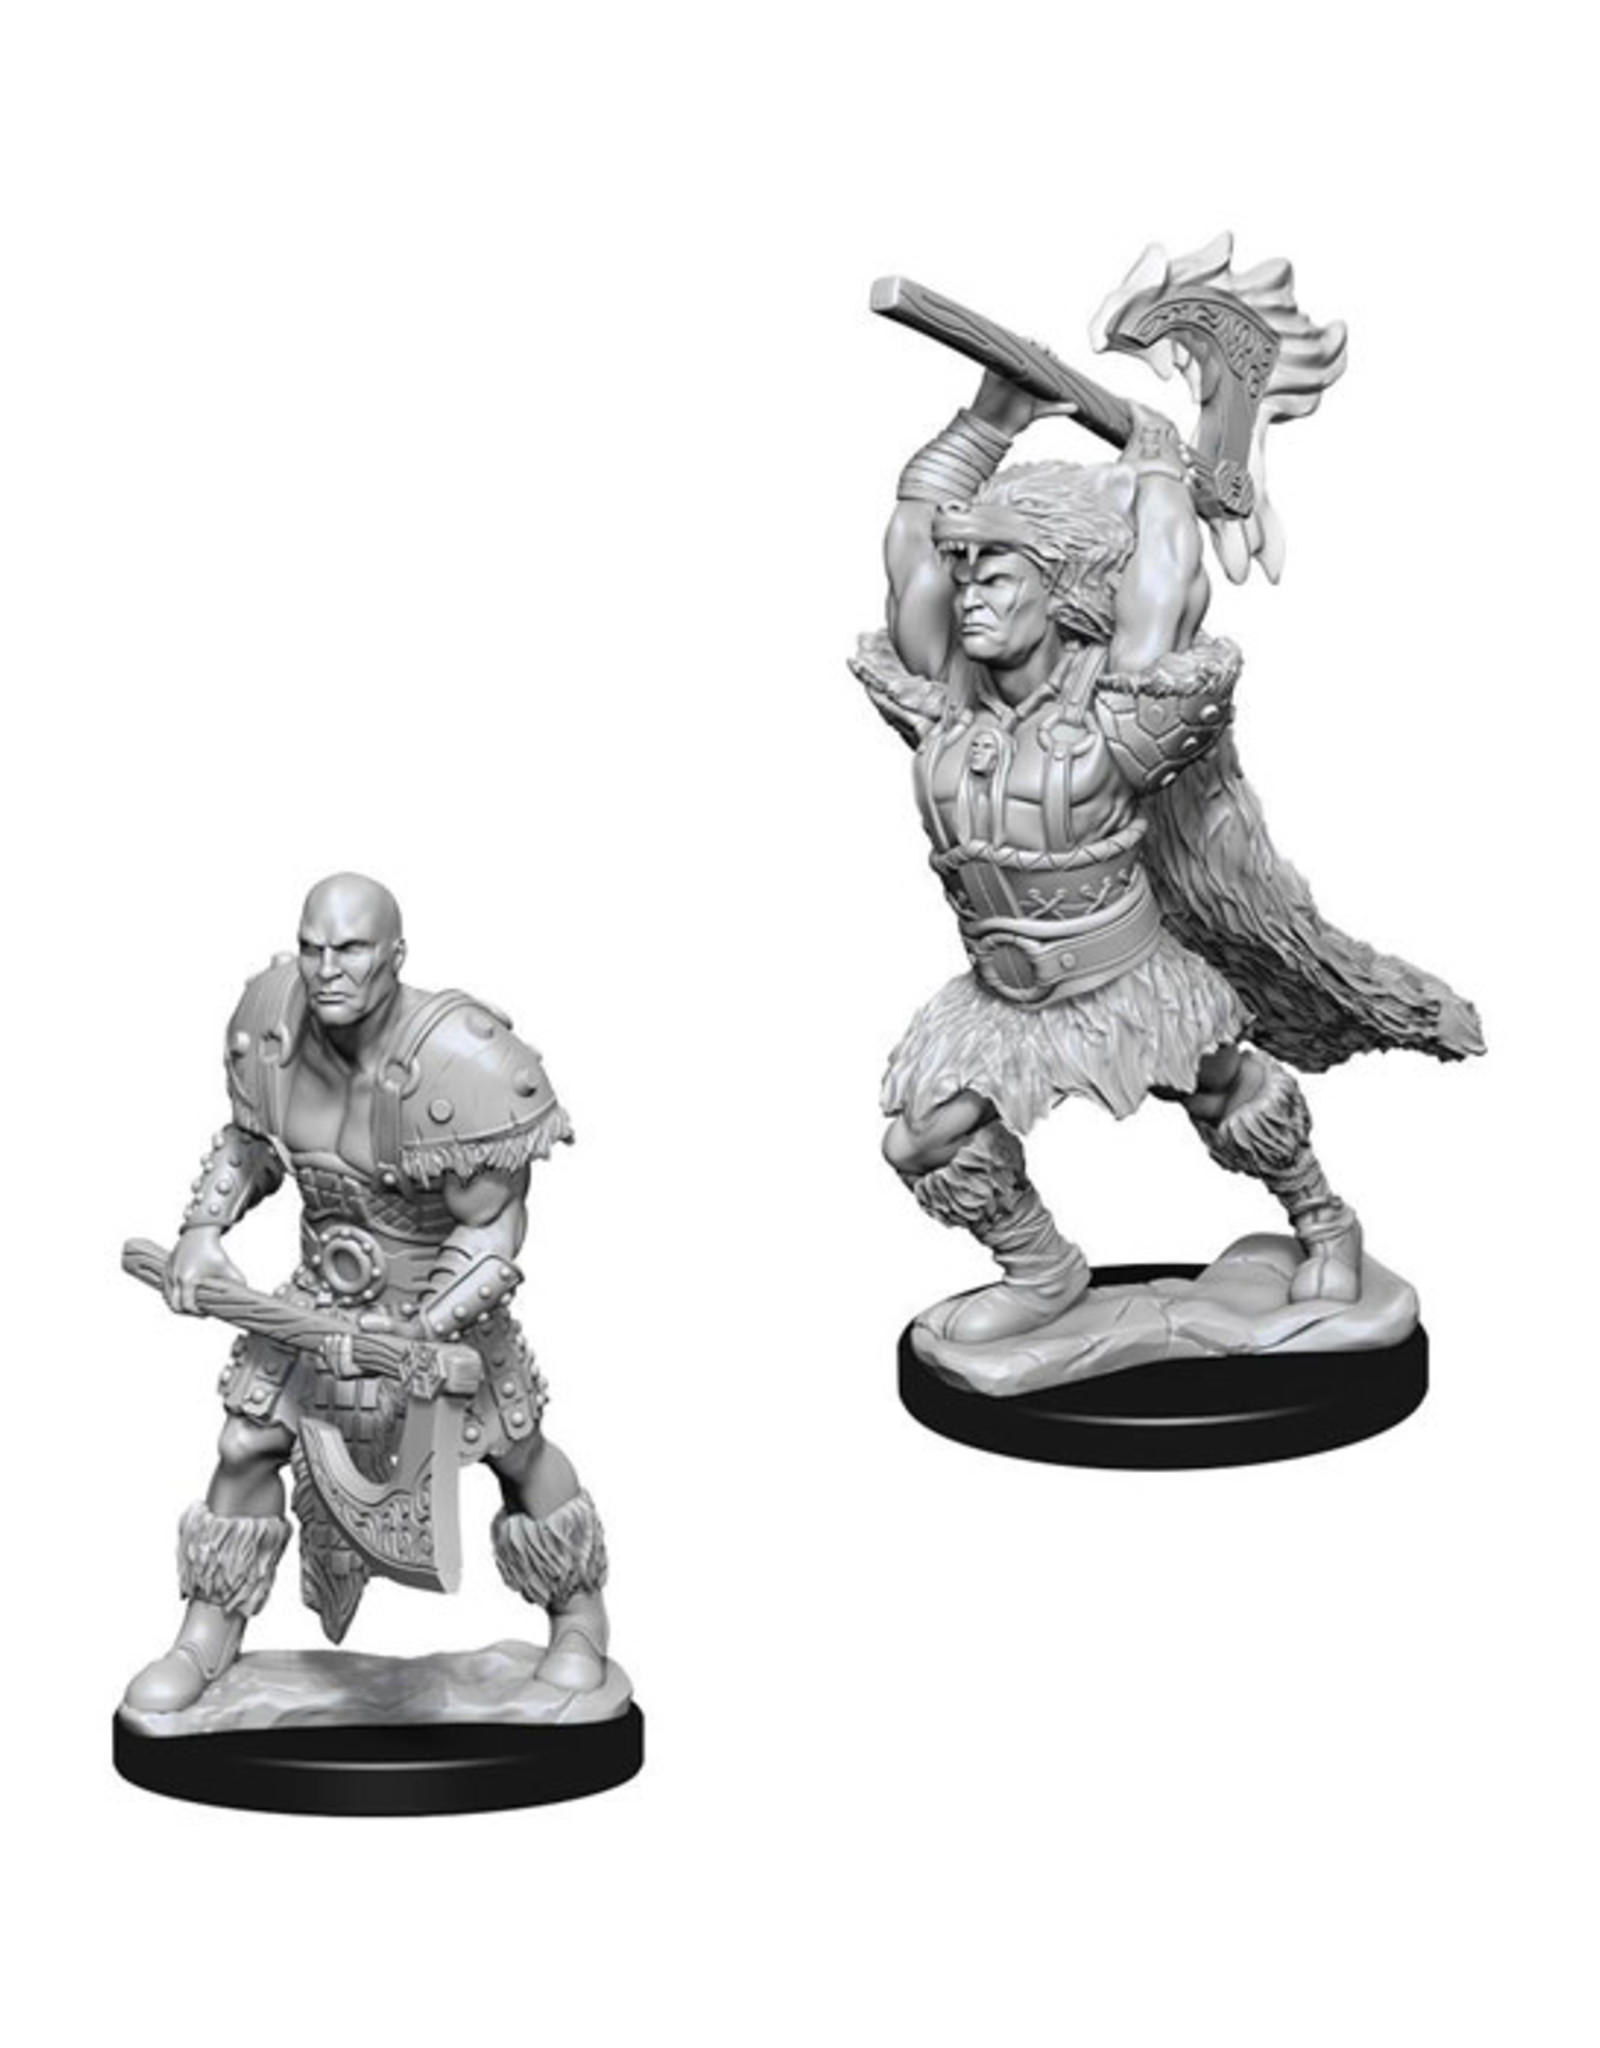 Dungeons & Dragons Dungeons & Dragons: Nolzur's - Goliath Male Barbarian